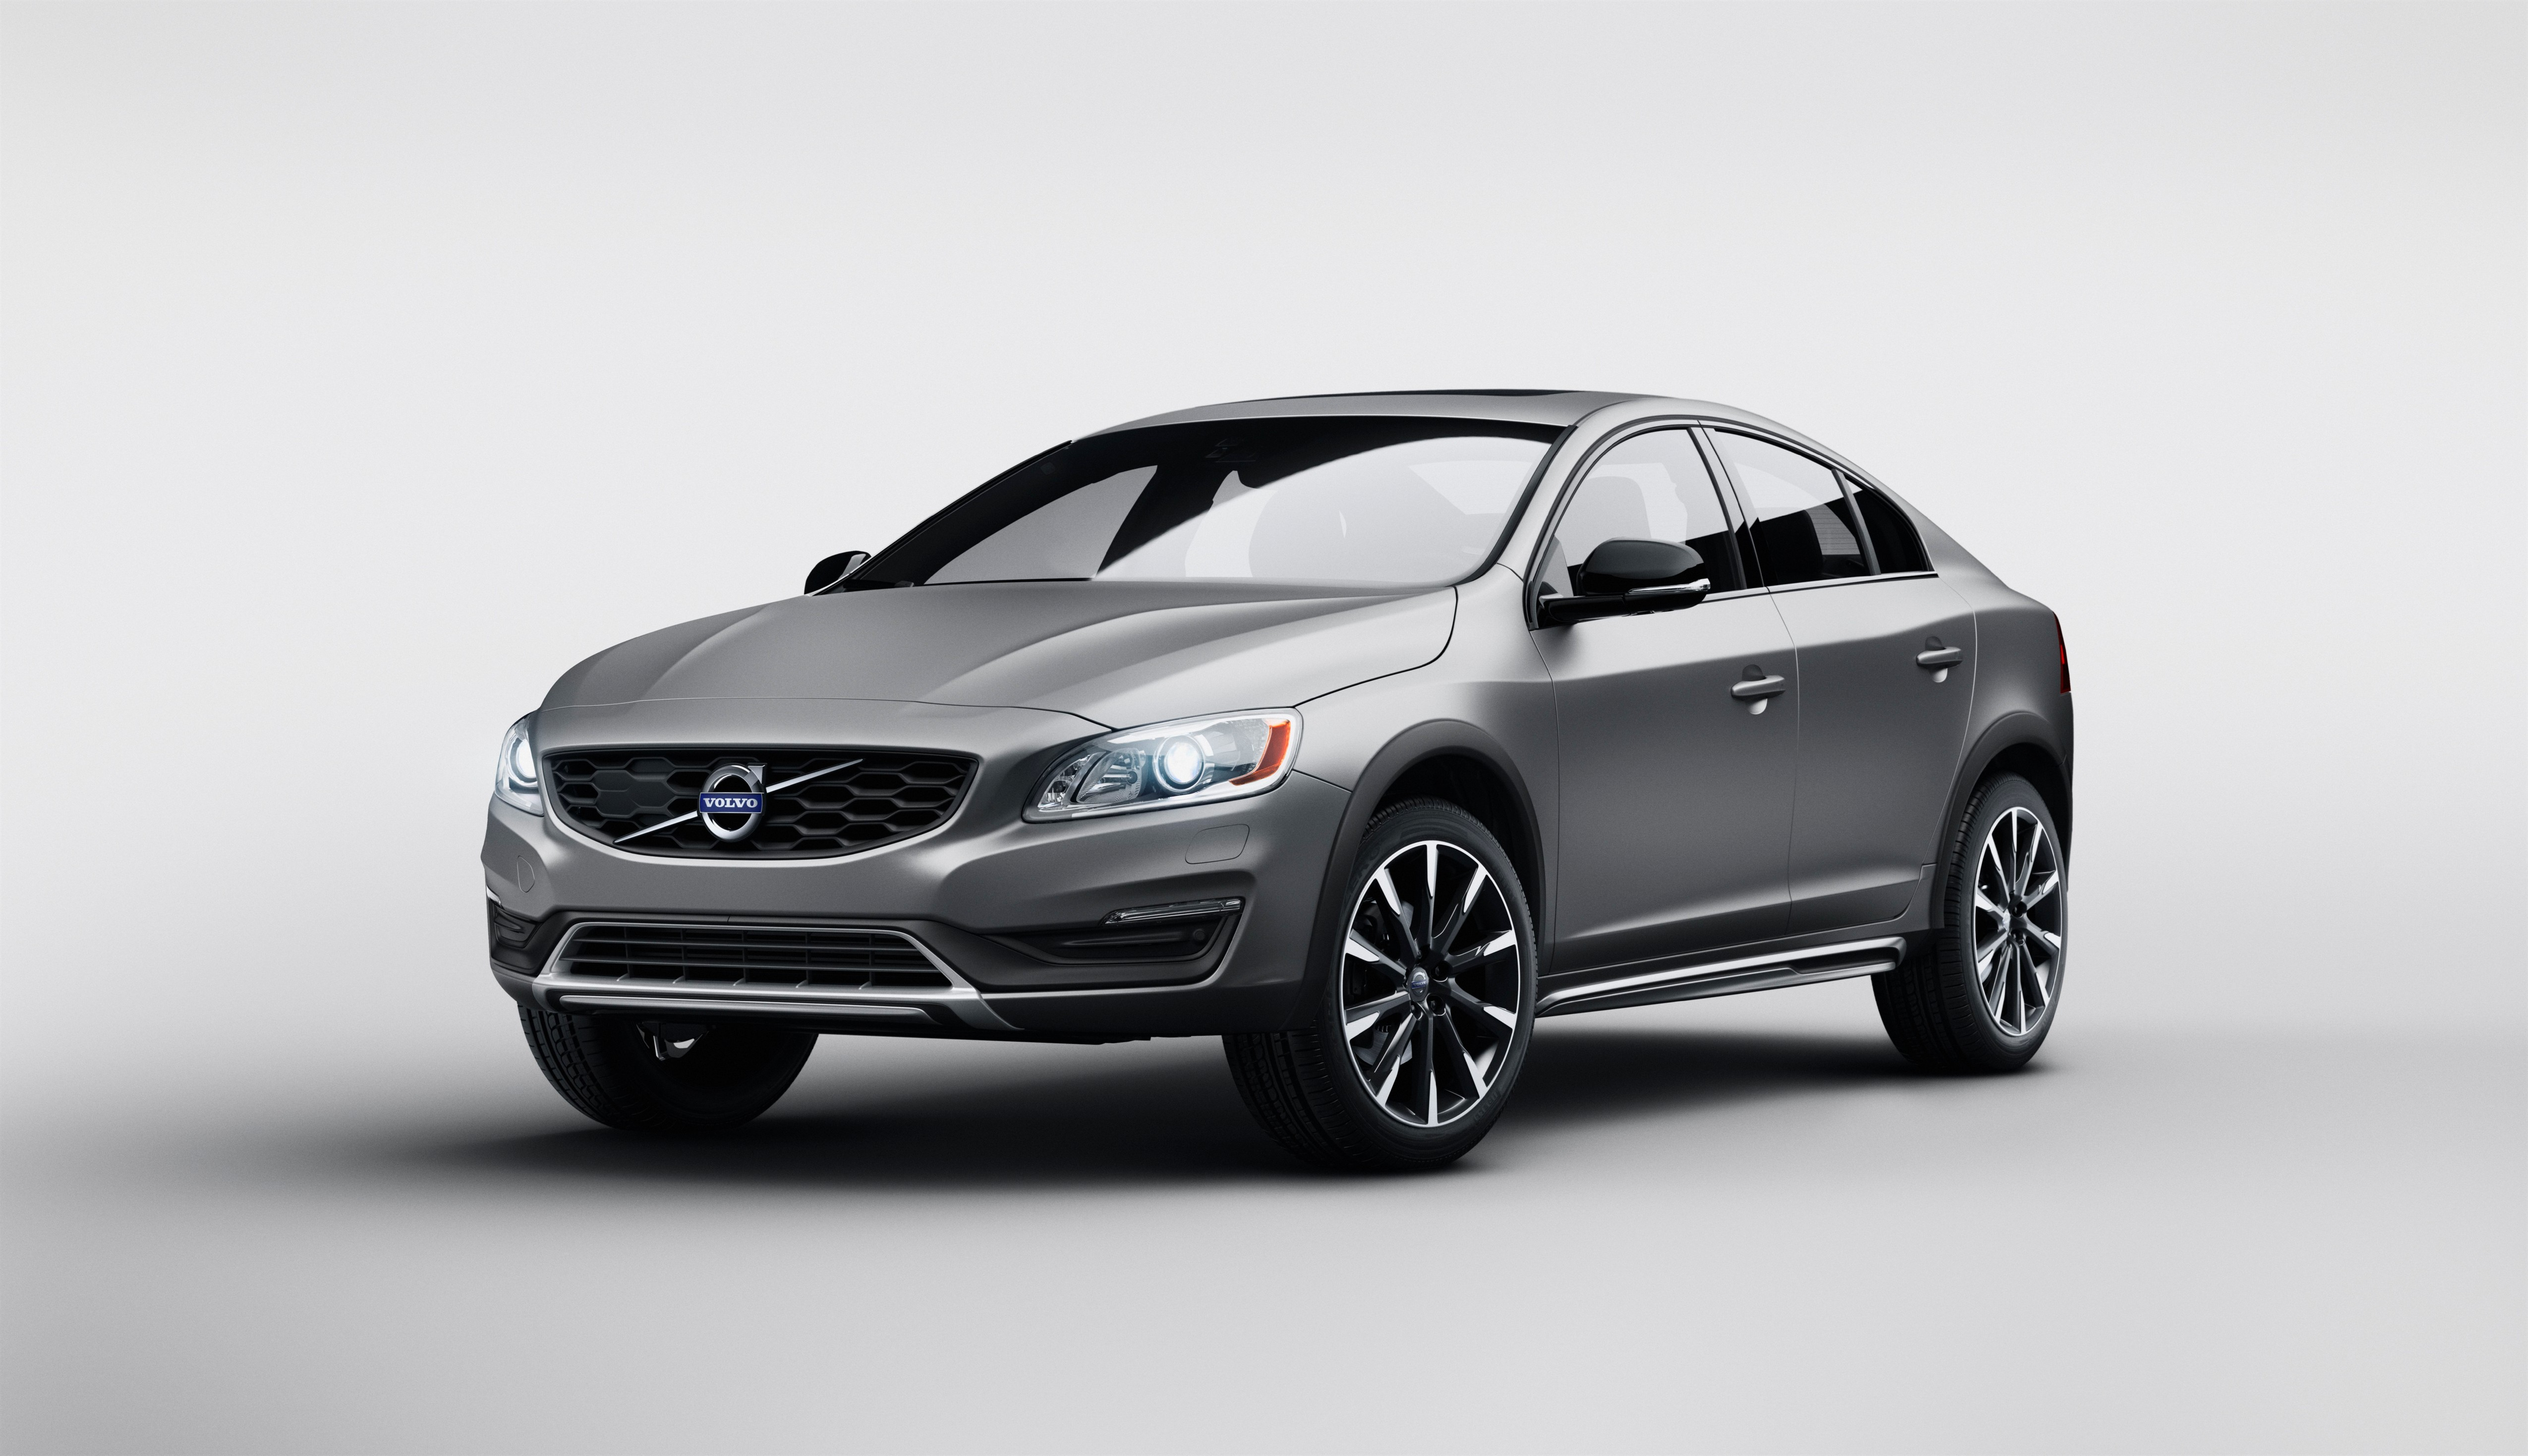 The Volvo S60 Cross Country